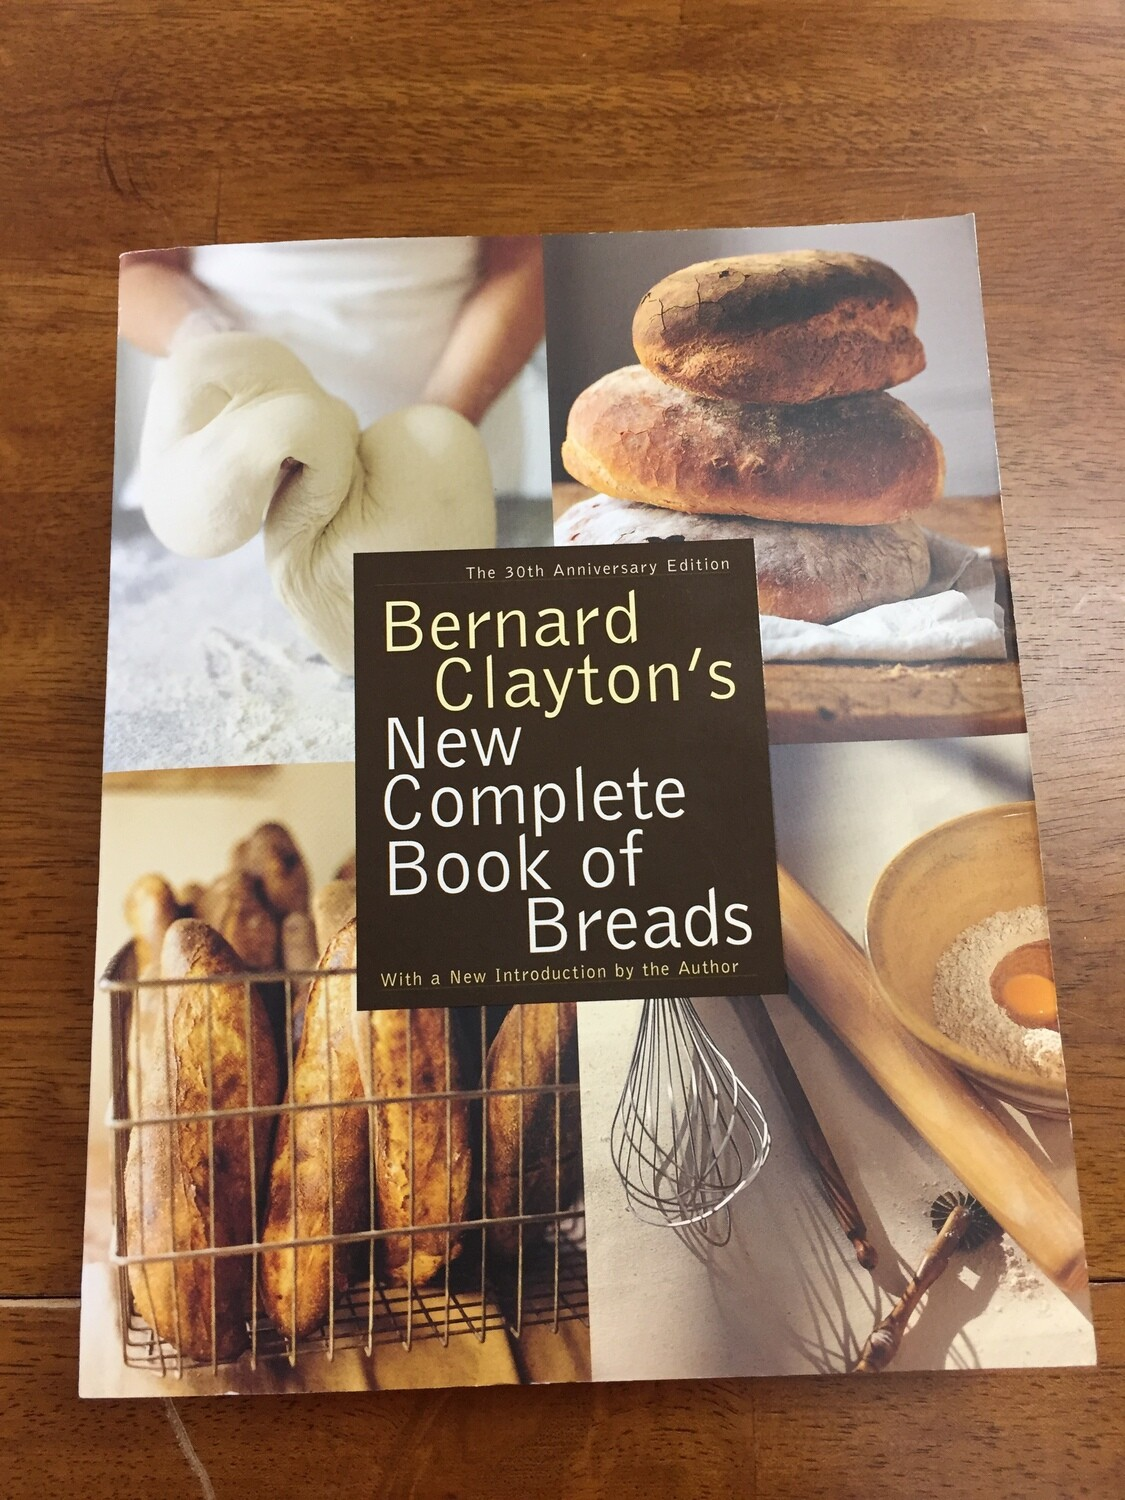 Bernard Clayton's New Complete Book of Breads - New